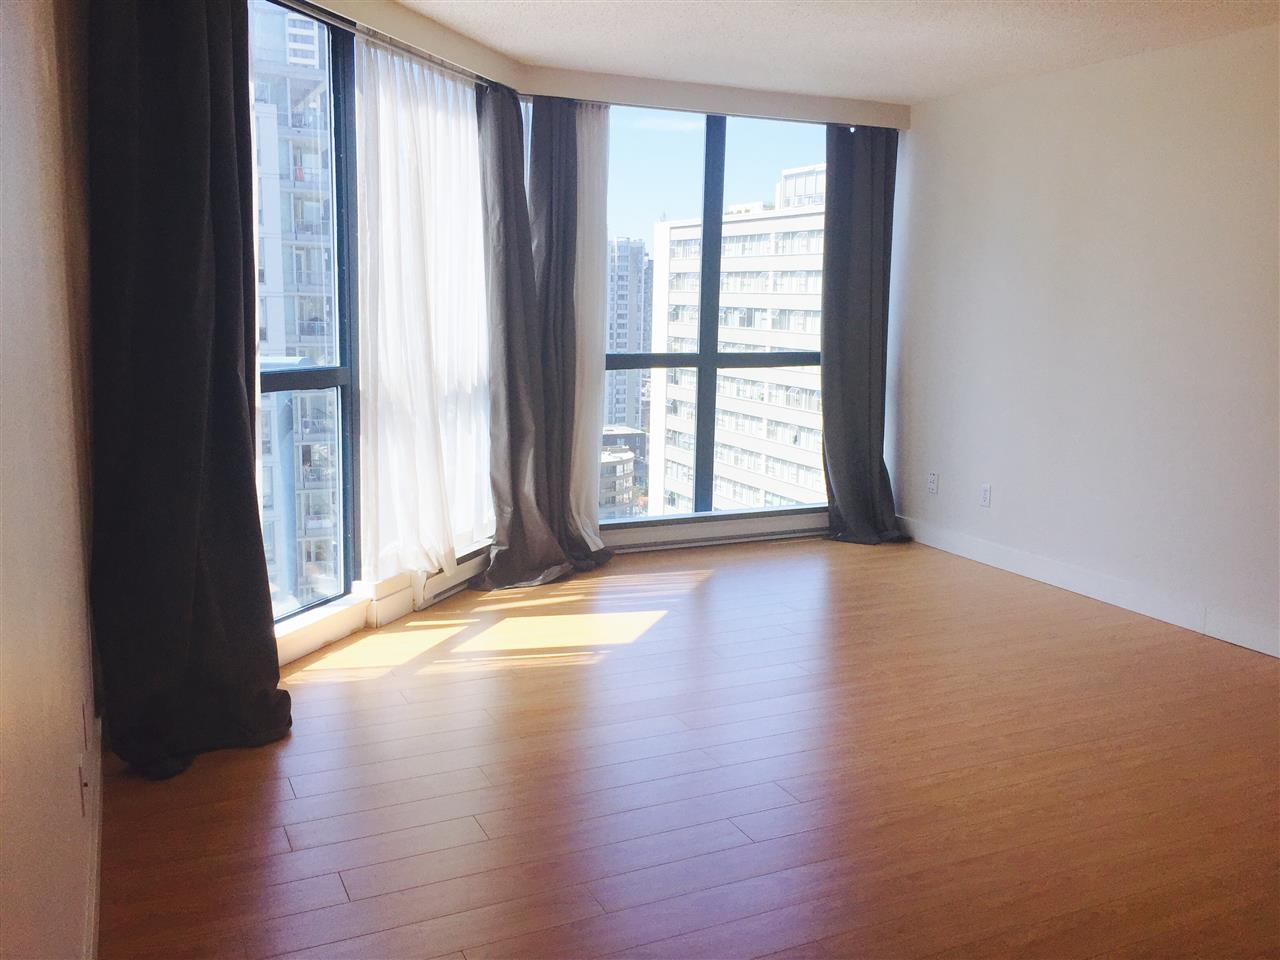 Condo Apartment at 1704 1415 W GEORGIA STREET, Unit 1704, Vancouver West, British Columbia. Image 8